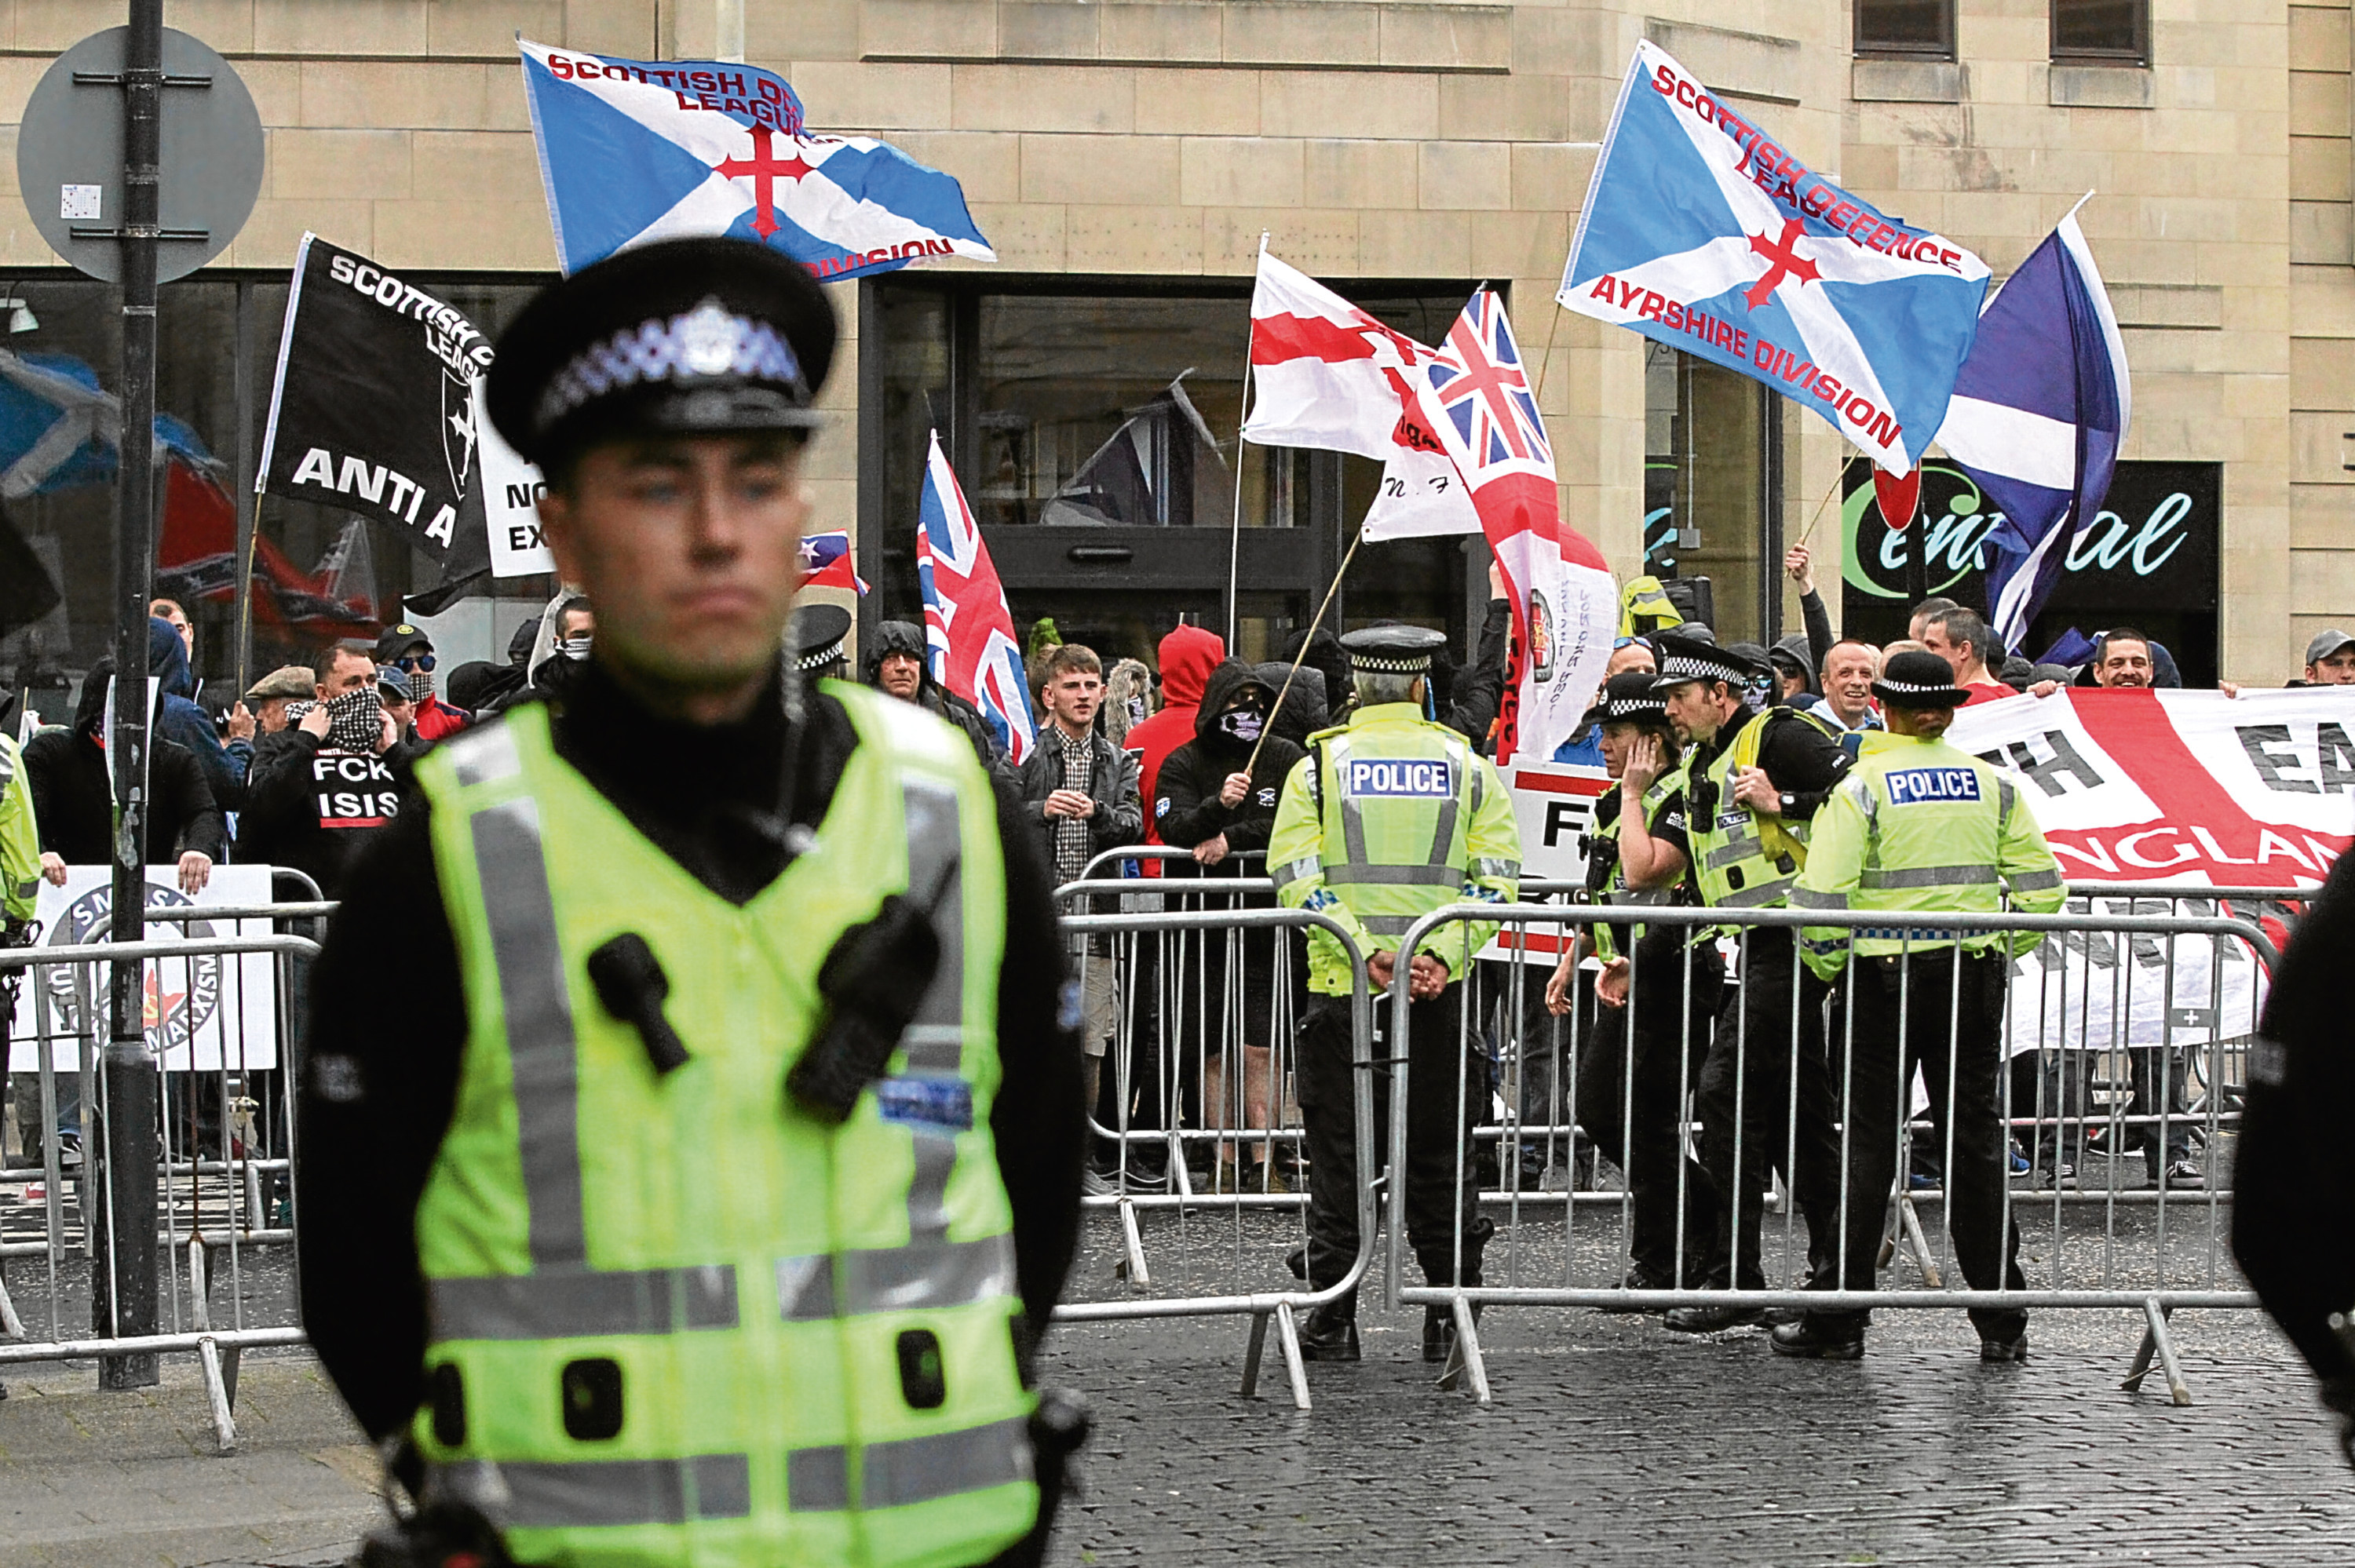 SDL protesters in Perth.